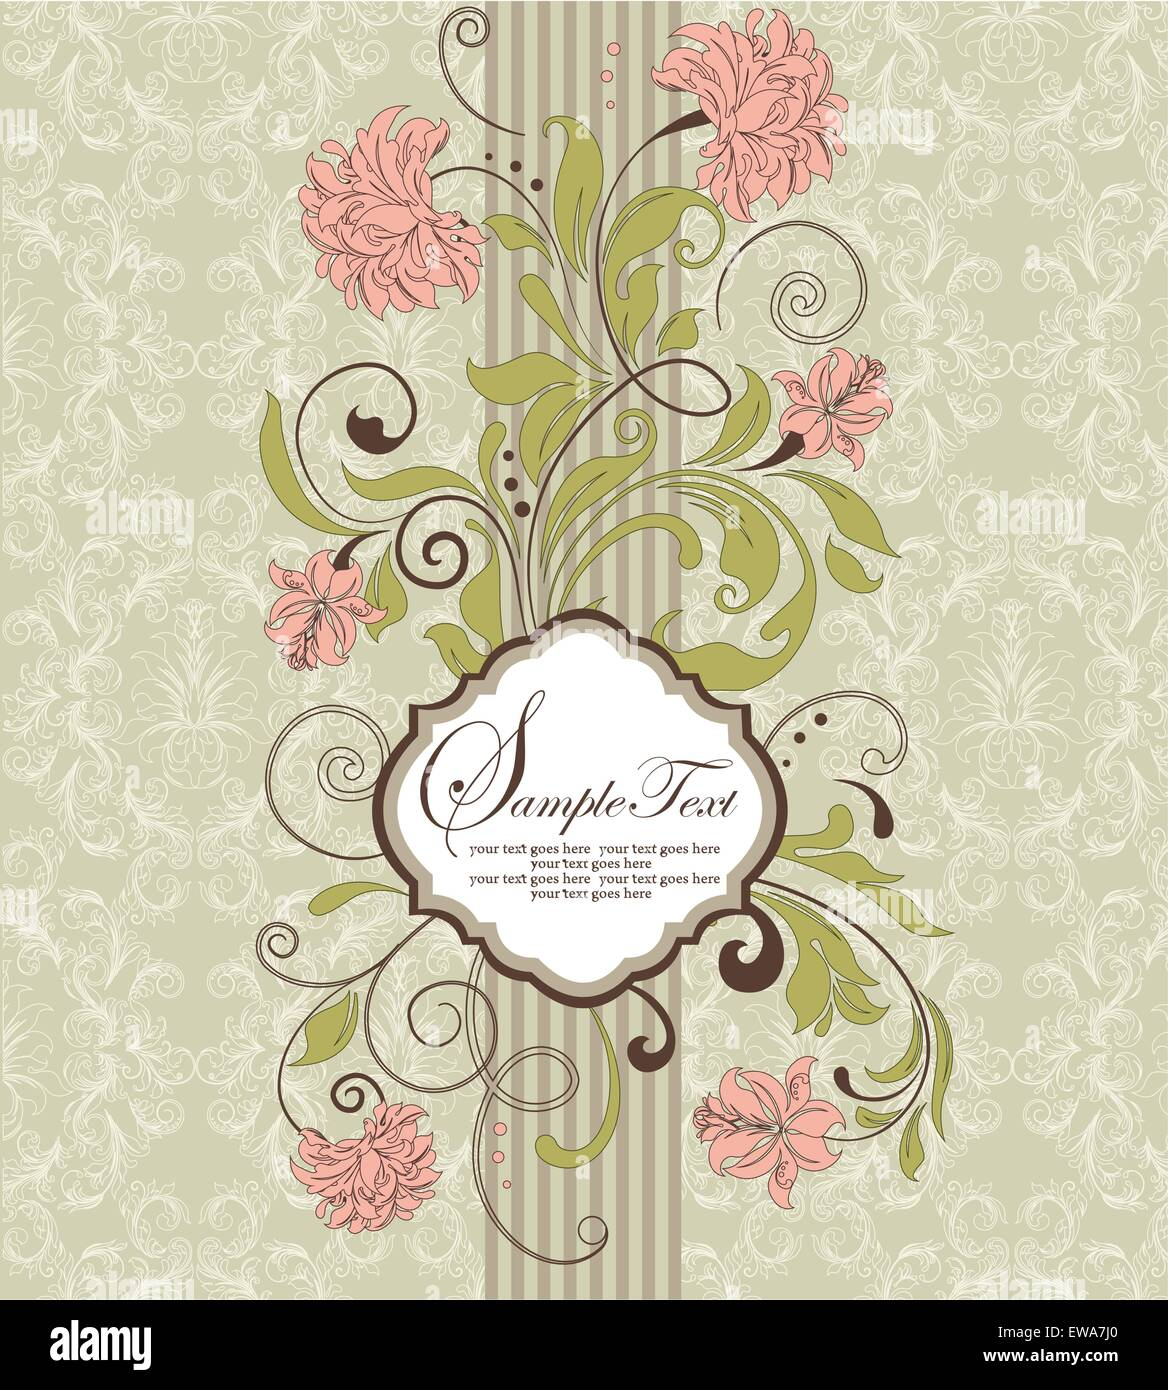 Vintage invitation card with ornate elegant retro abstract floral peach and olive green flowers and leaves on pale green and white background with striped ribbon vector illustration vintage invitation card stopboris Image collections